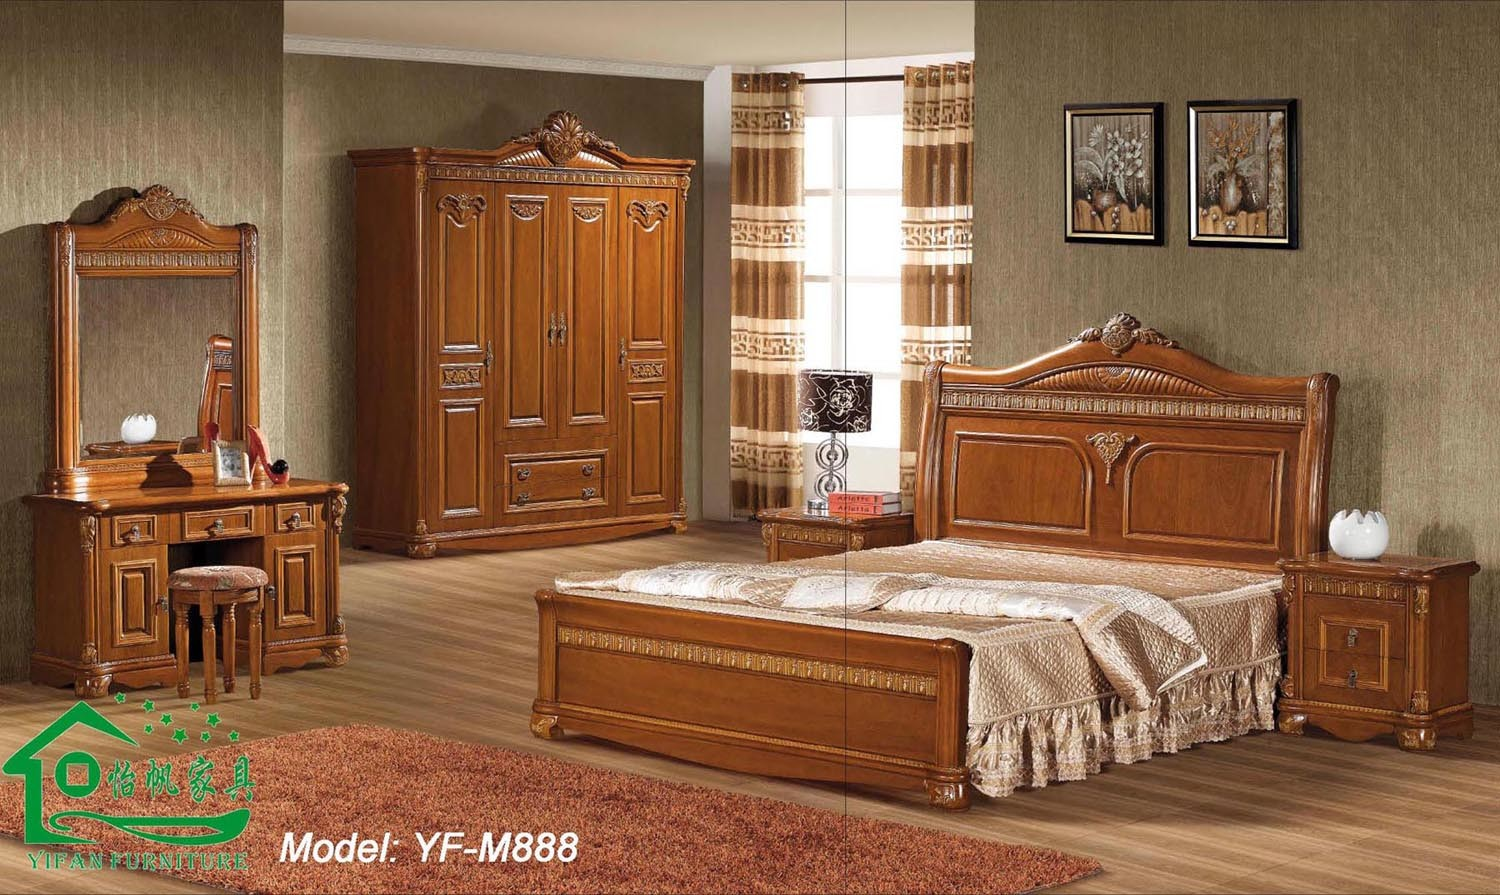 China wooden bed for home furniture and adult bed yf m888 for Where to get bedroom furniture